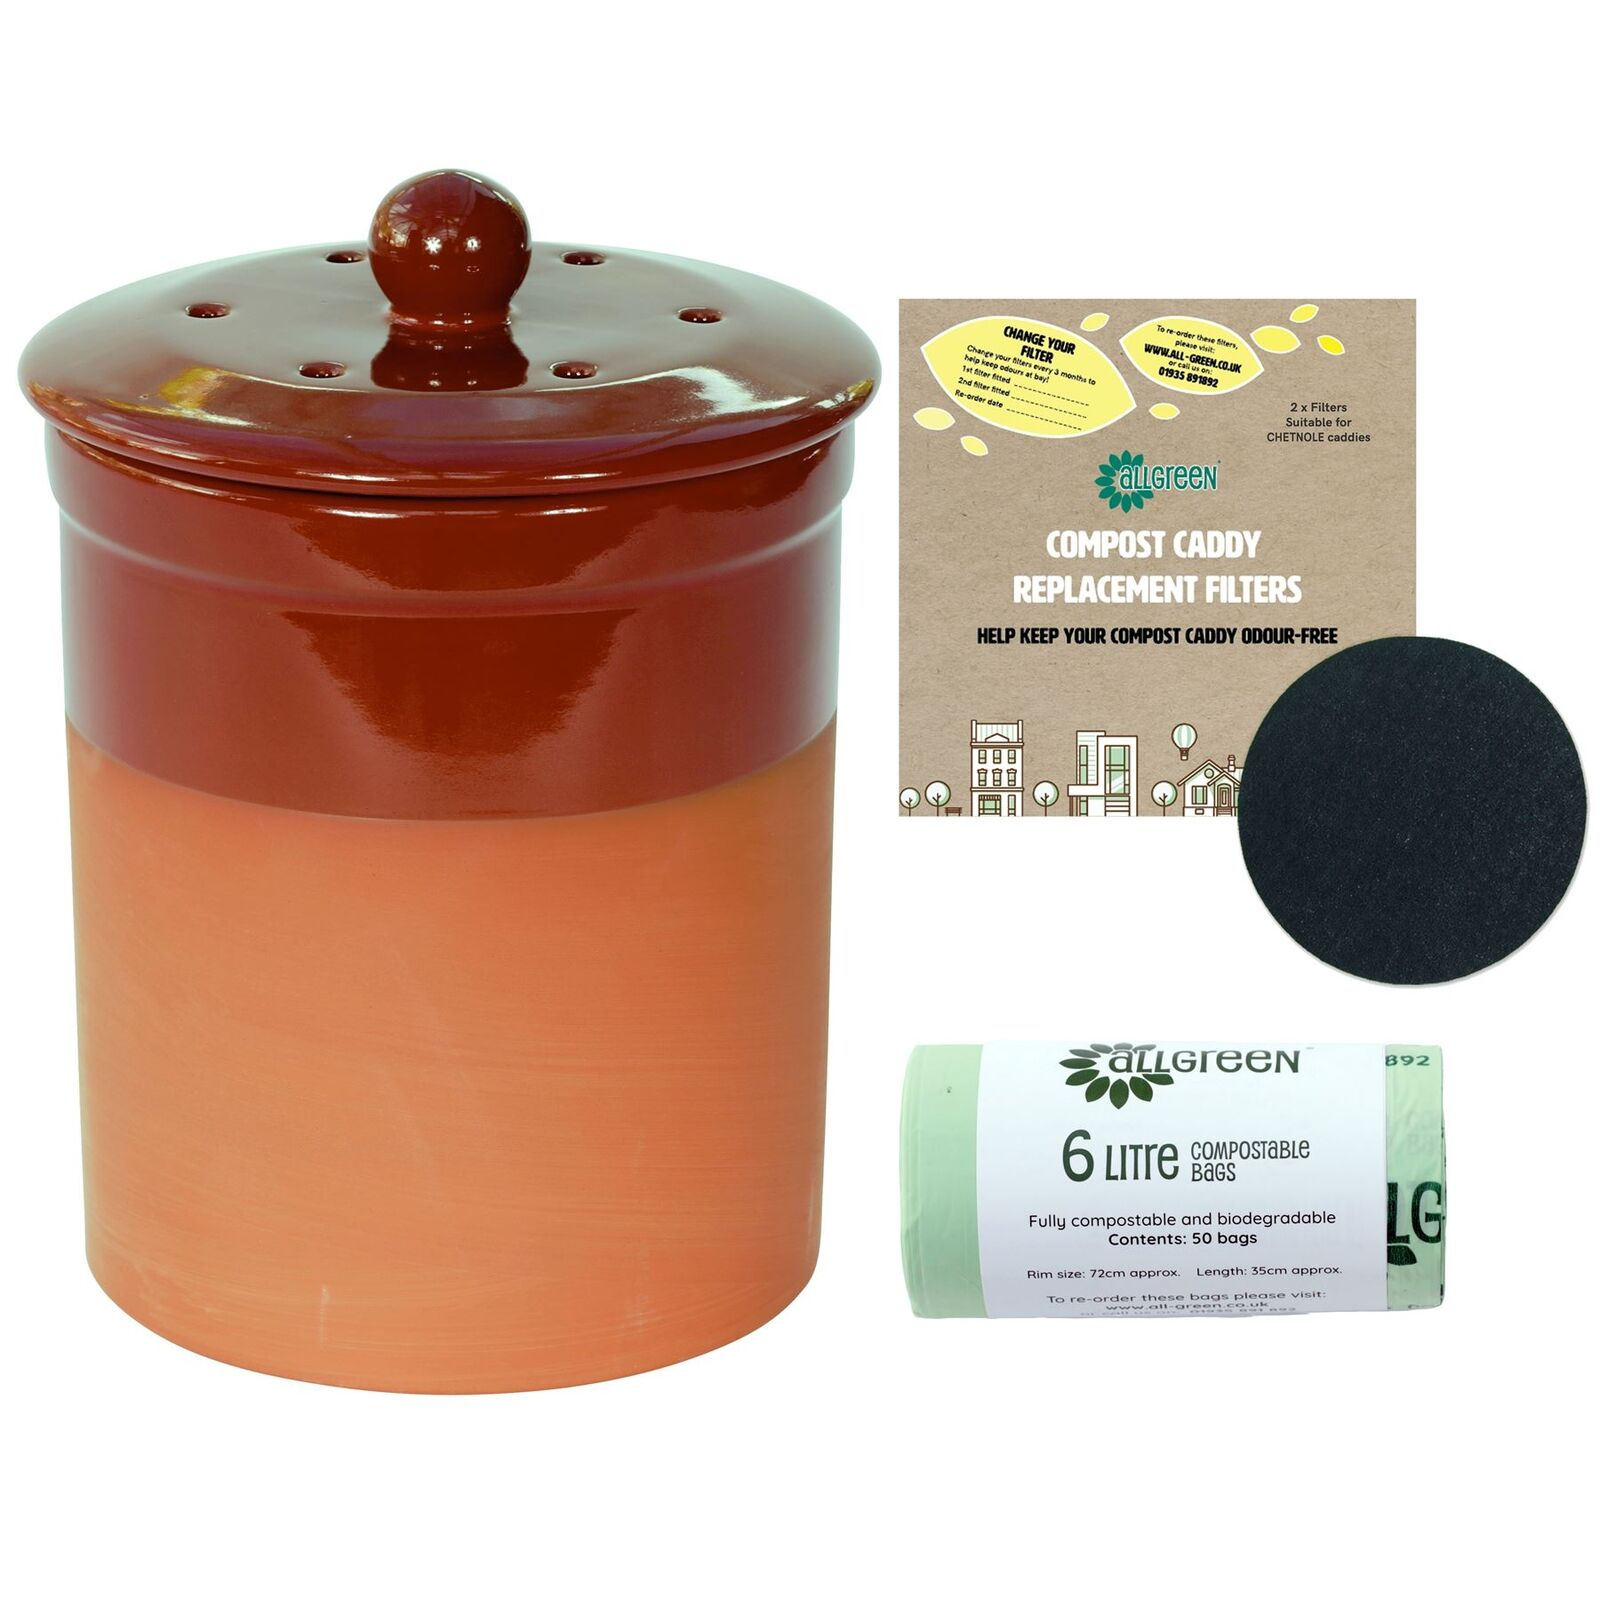 Chetnole Terracotta Ceramic Caddy-rot-2xFilters&50x6L Compostable Bags